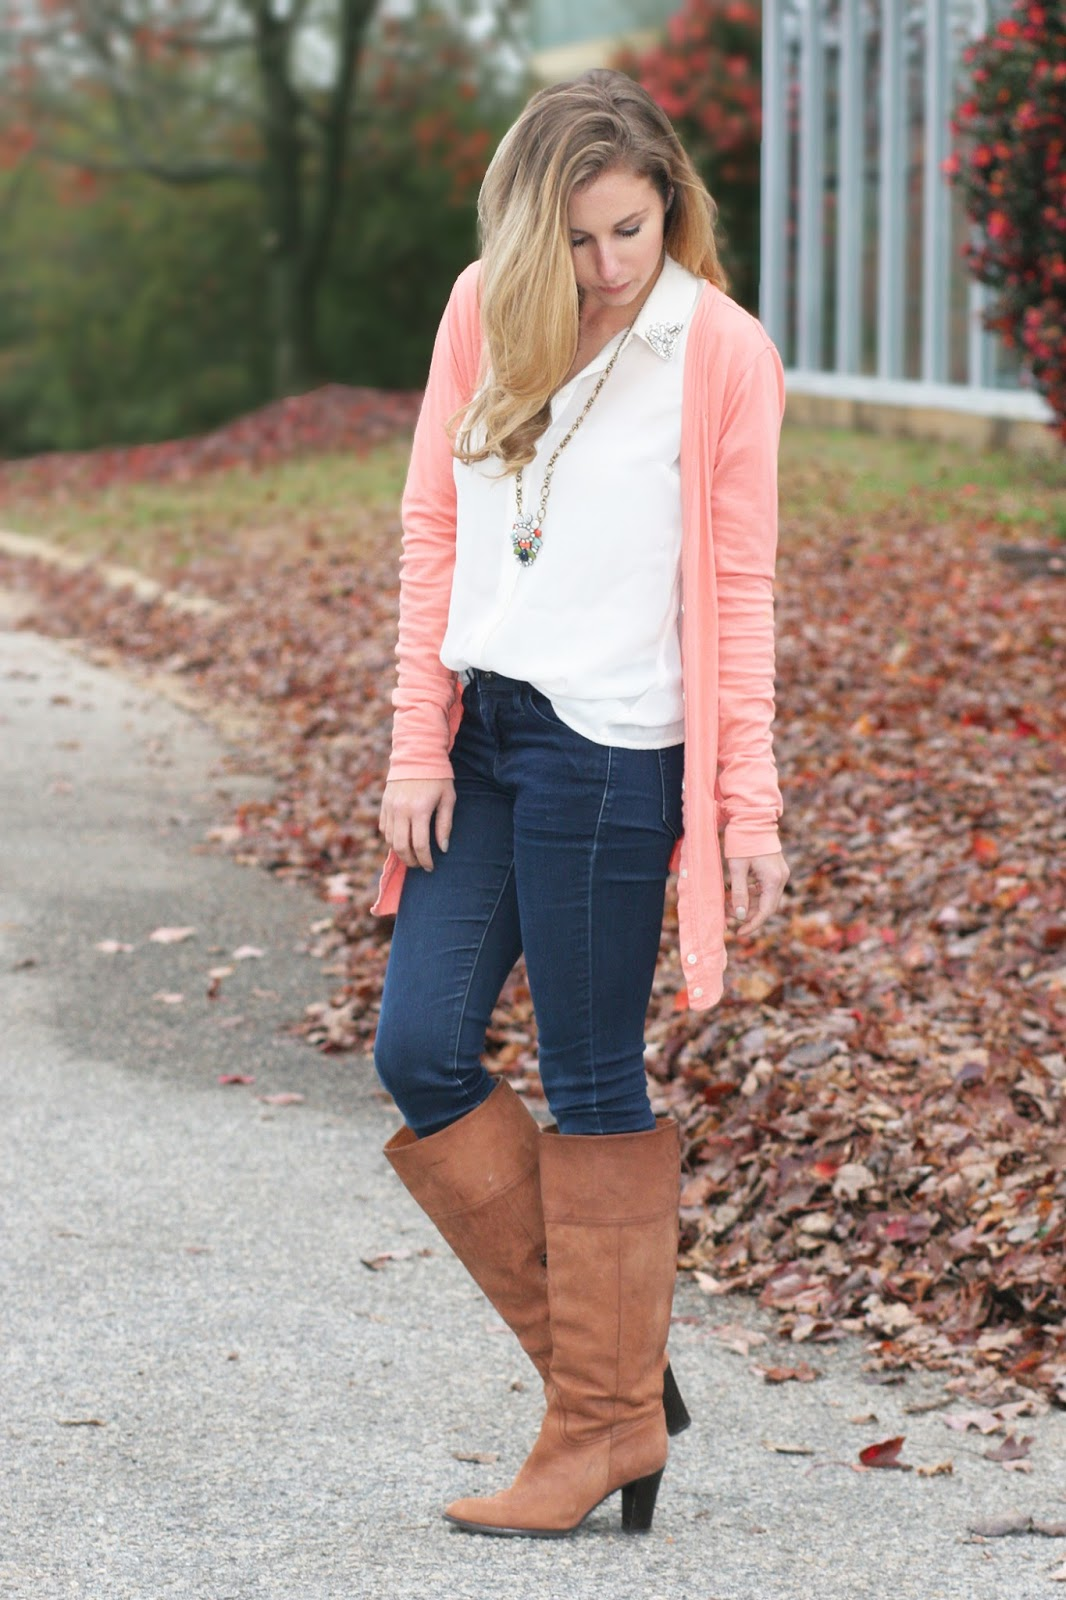 camel-riding-boots-a-statement-necklace-and-a-long-cardigan